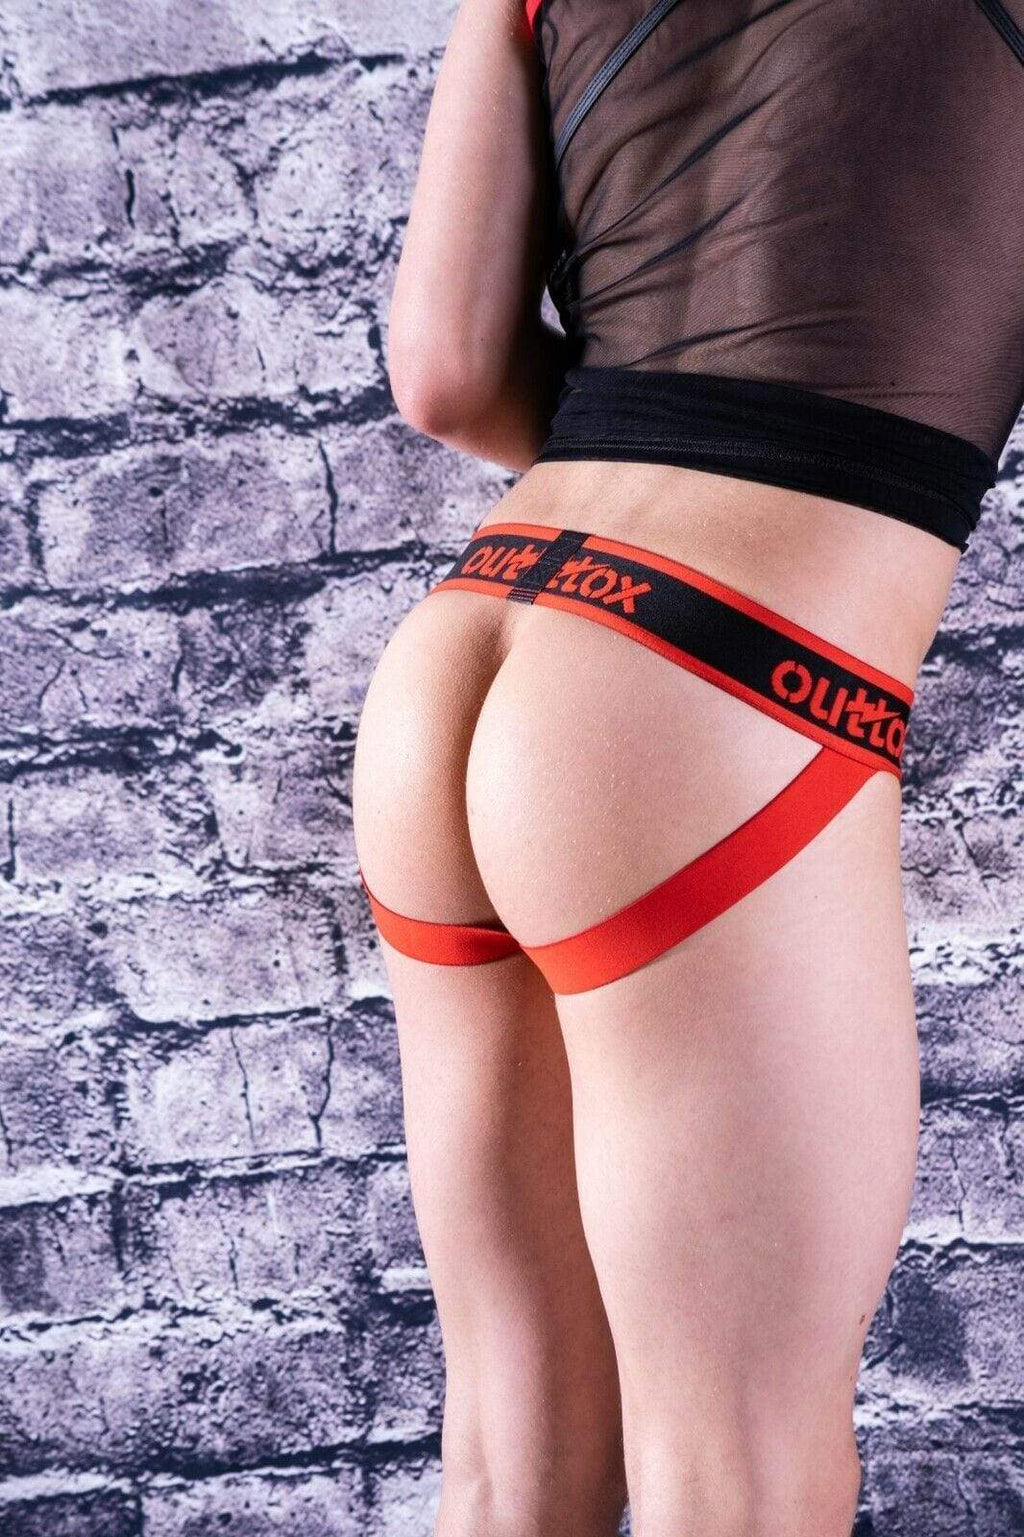 SexyMenUnderwear.com Outtox  By Maskulo Jock Provocative Jockstrap Leather Look Red JS140-10 7